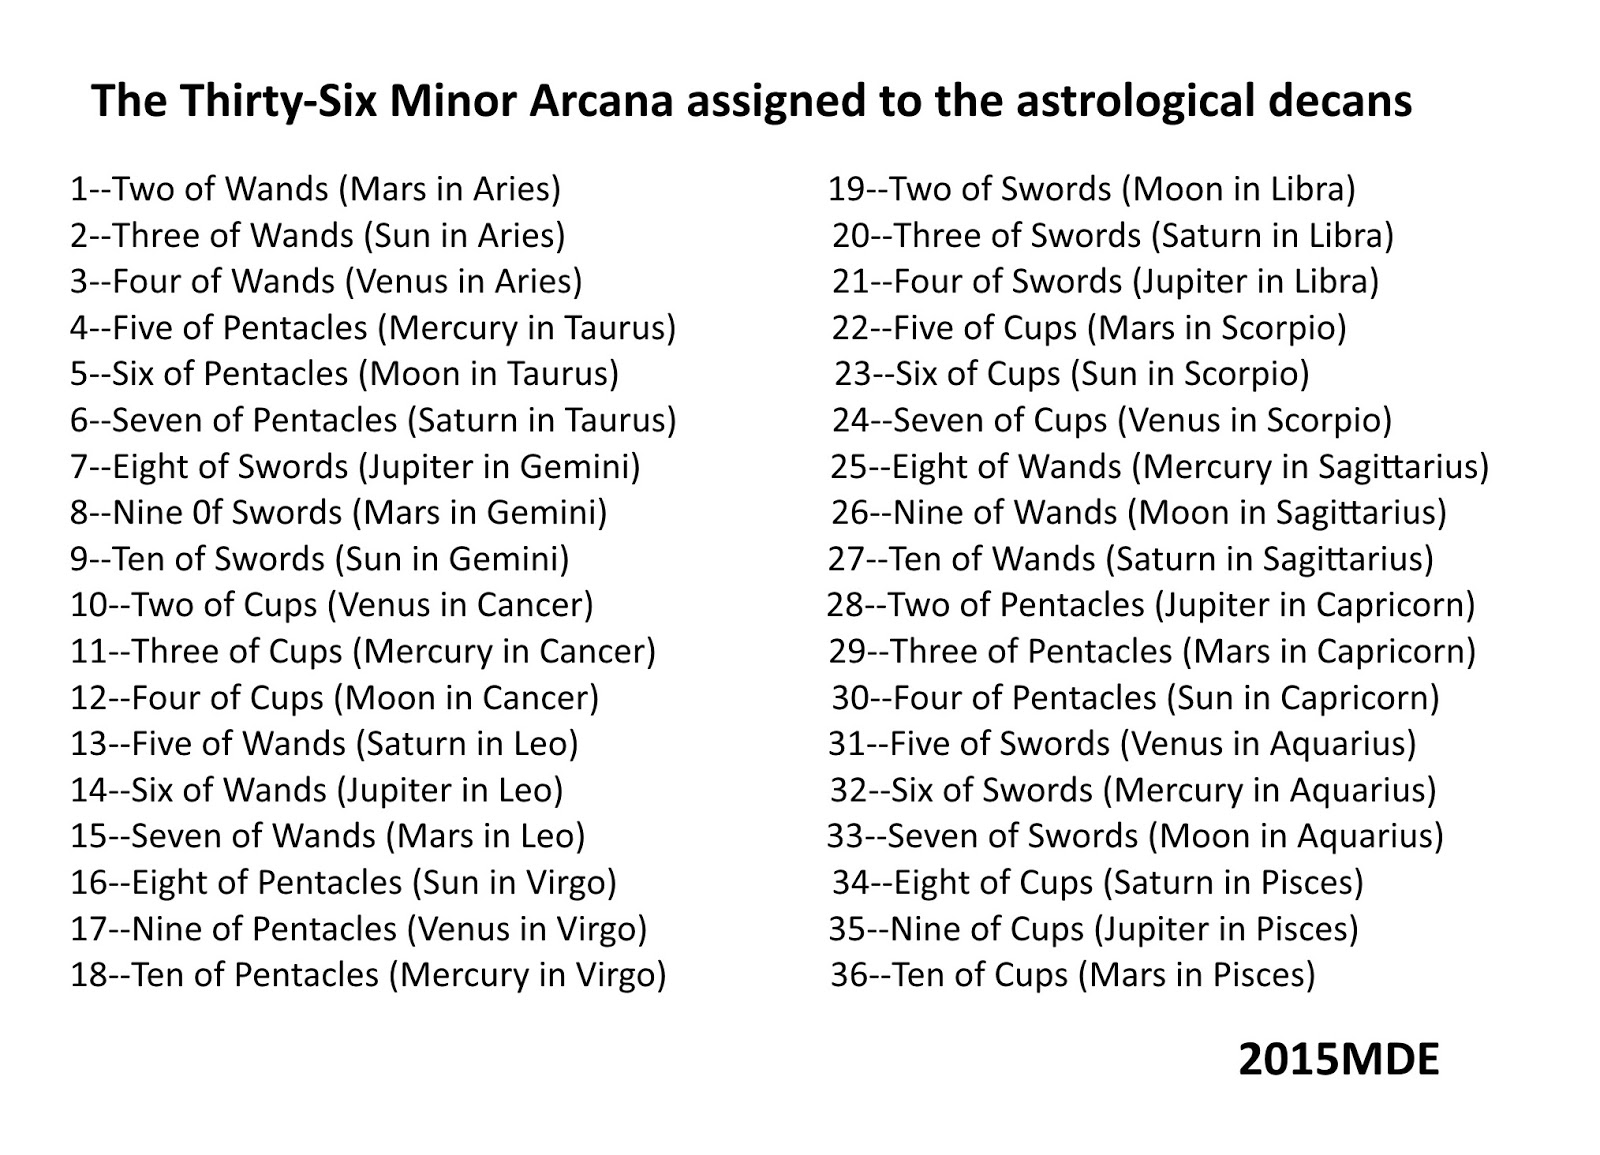 The golden dawn version of decan sub rulers and their association with thirty six tarot cards